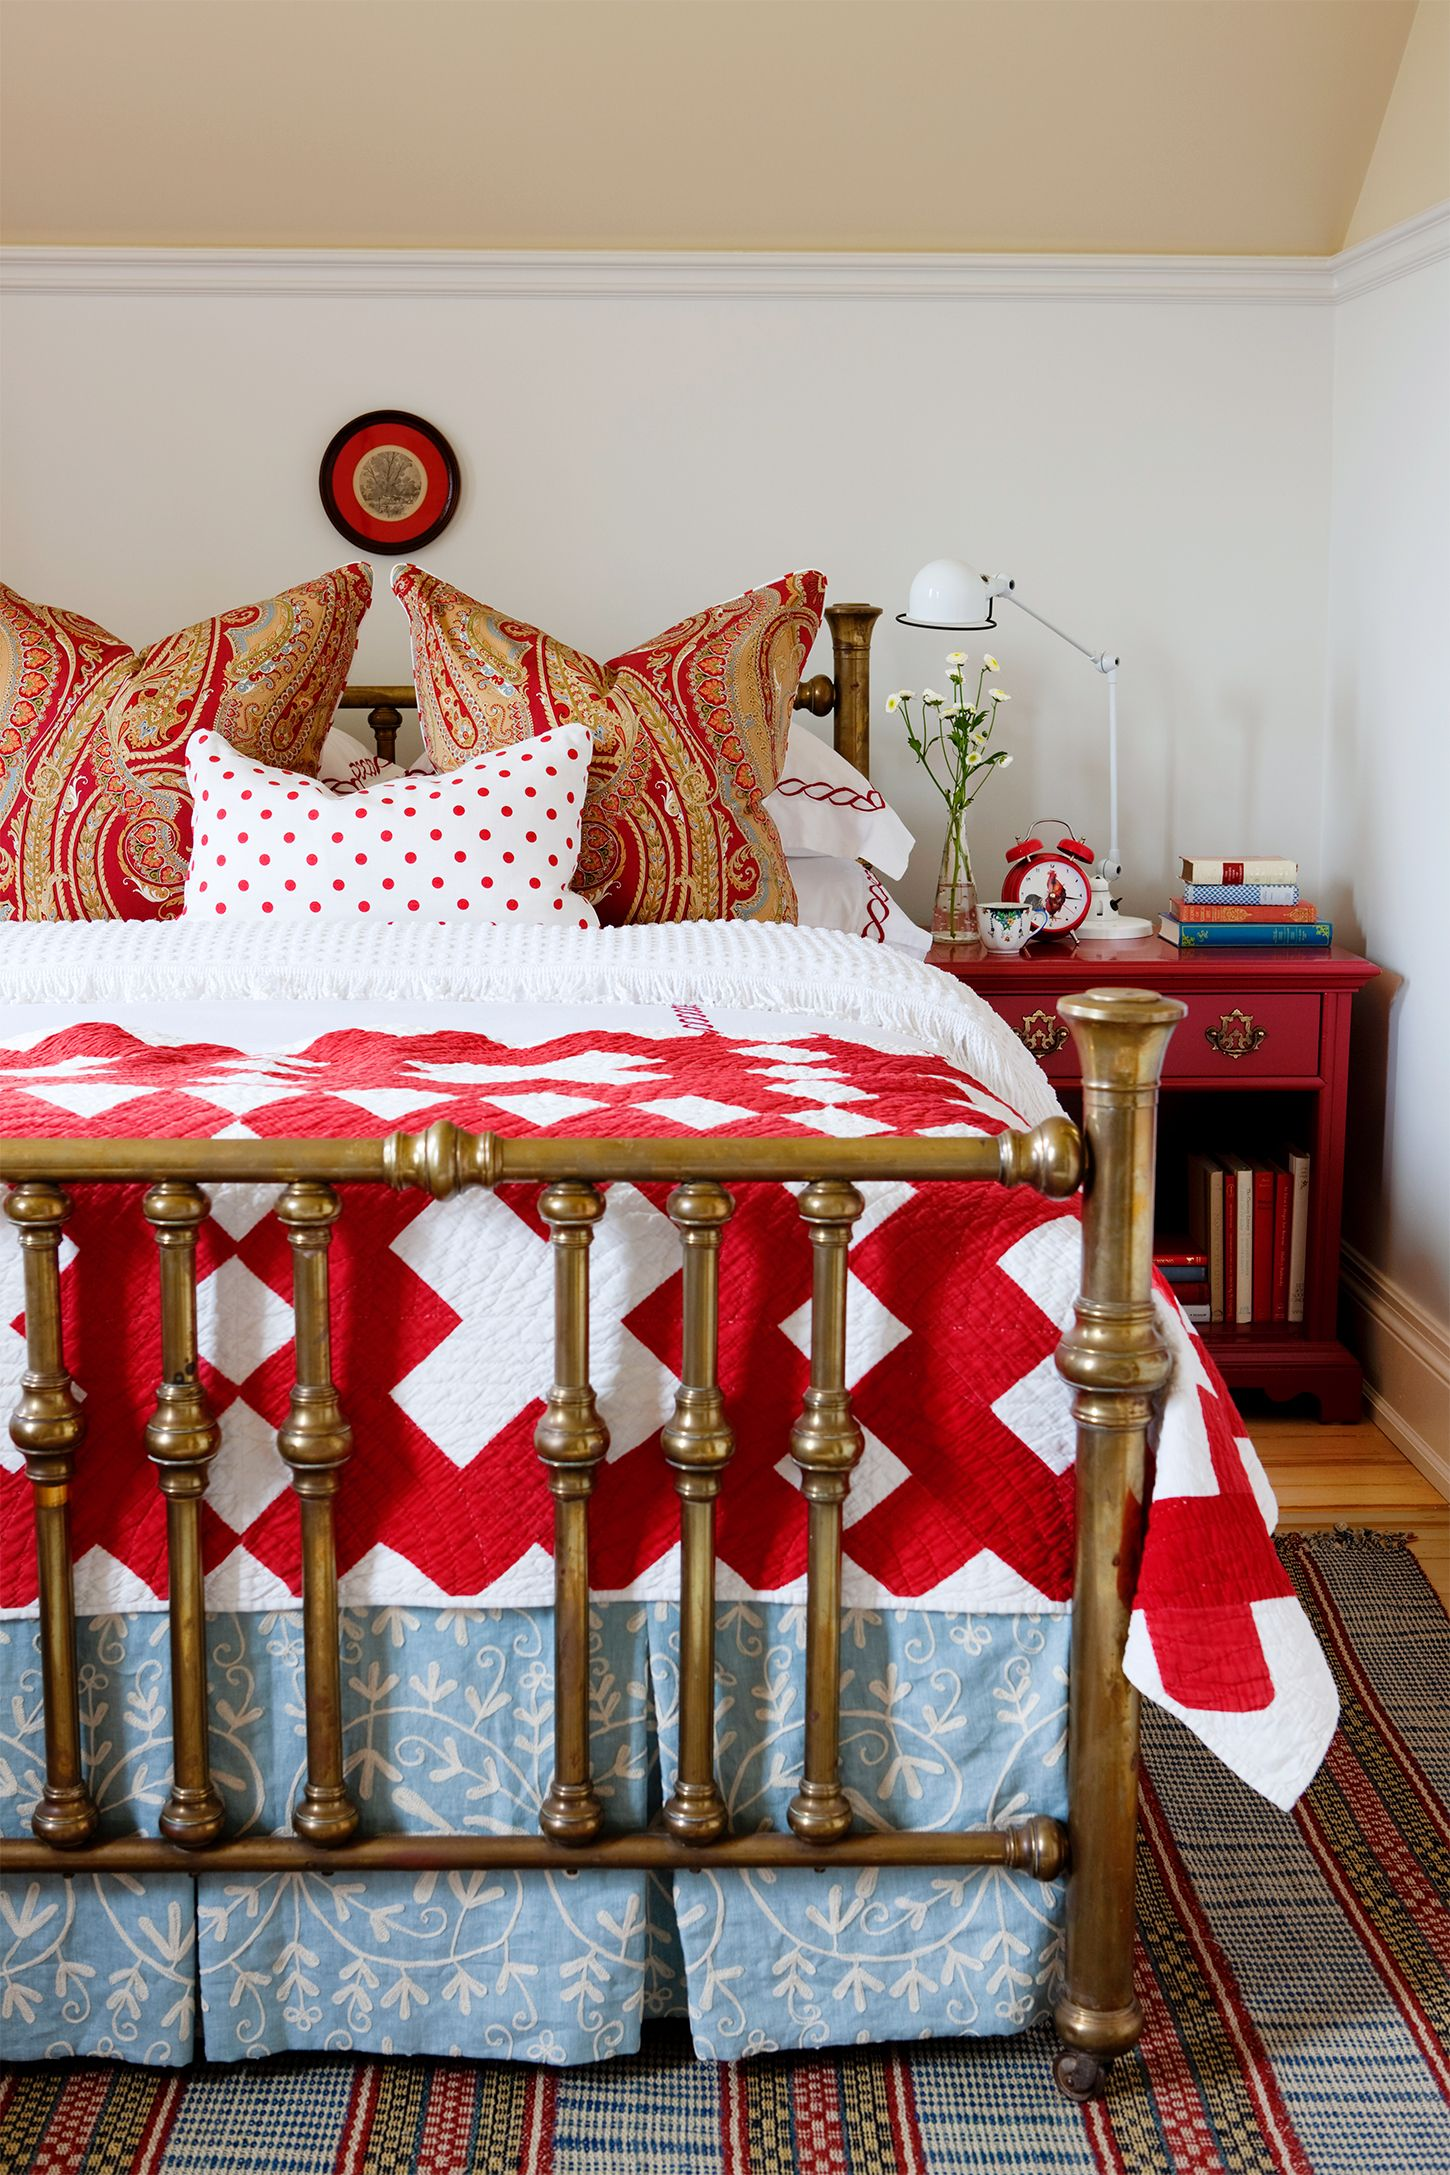 37 Cozy Bedroom Ideas - How To Make Your Room Feel Cozy on Comfy Bedroom Ideas  id=74865